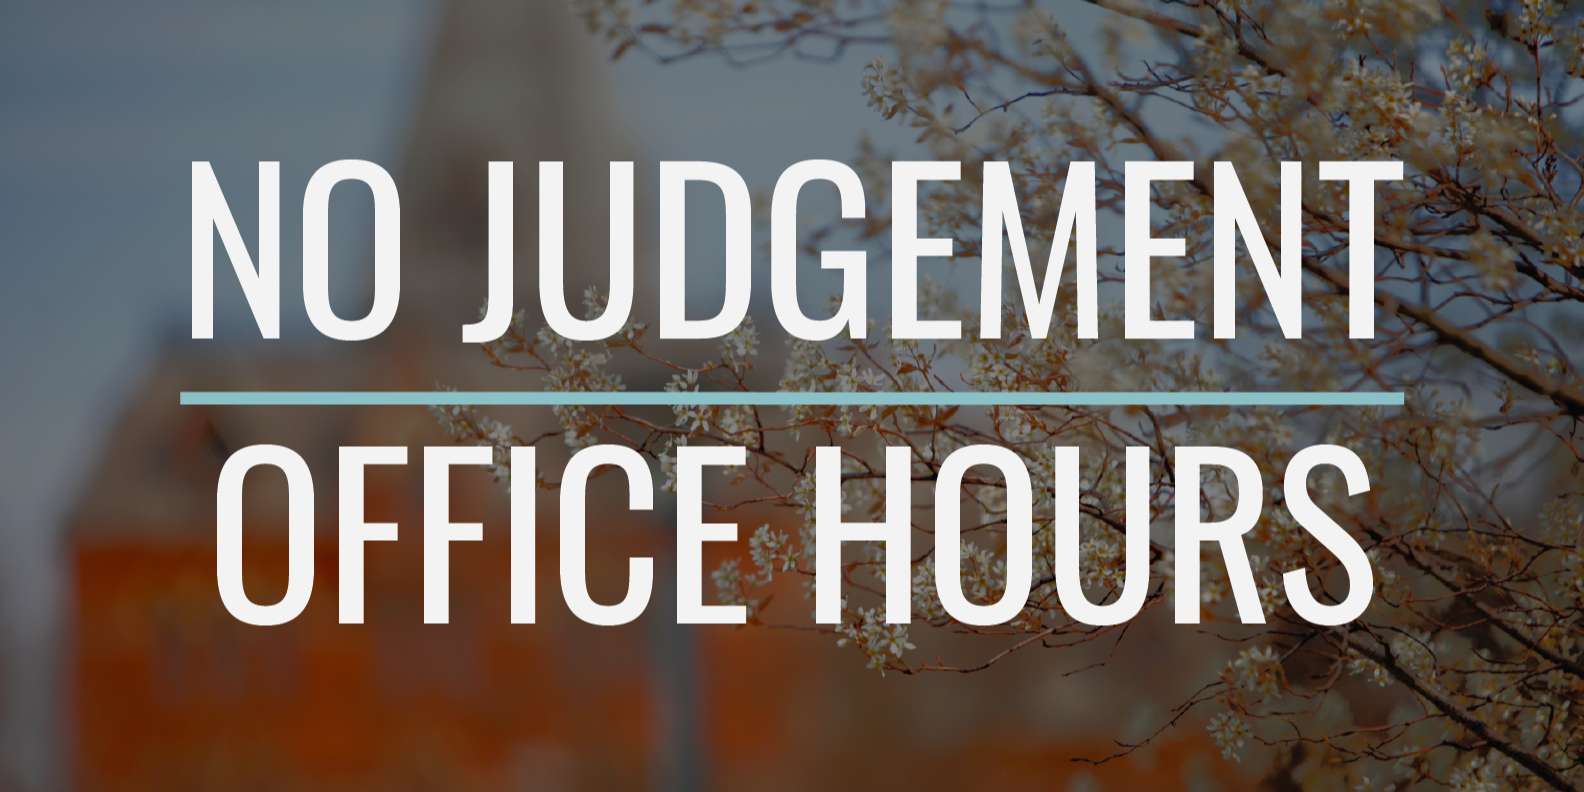 No Judgement Office Hours hosted by Ingrid Jensen